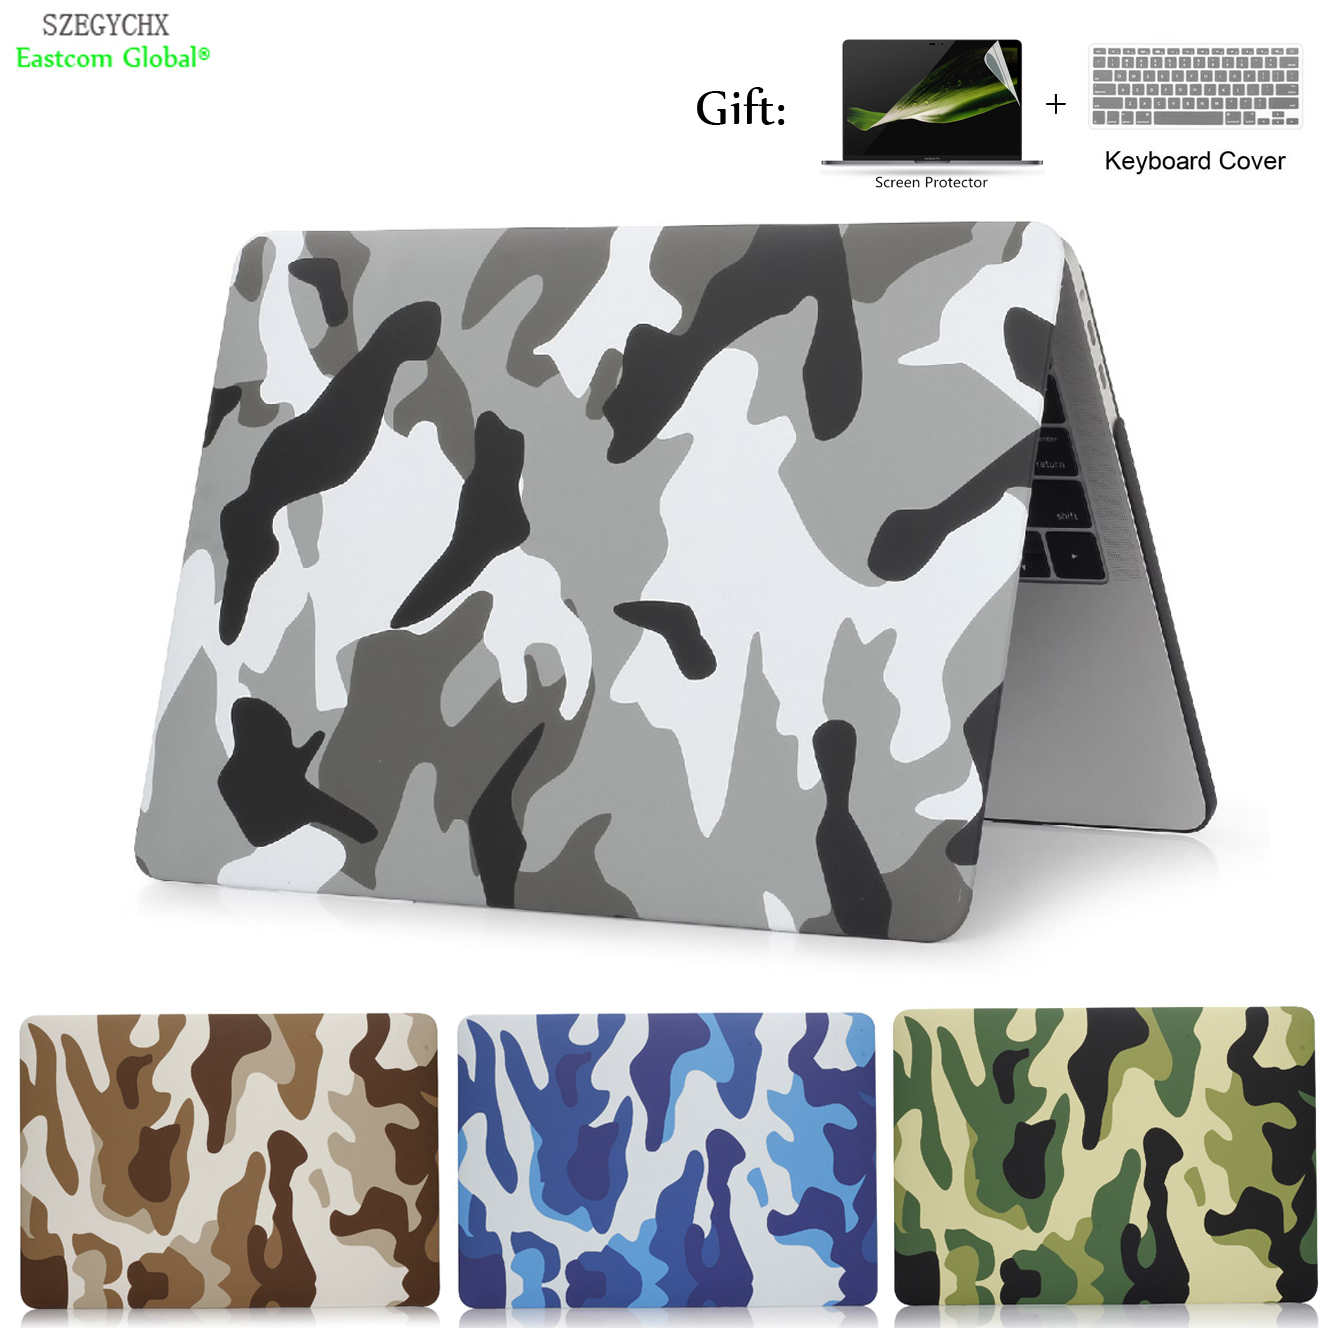 Camouflage Shell Laptop Väska För MacBook Air 13 11 Pro Retina 12 13.3 15 Pekskärm För Macbook New Air 13 A1932 2018 Väska